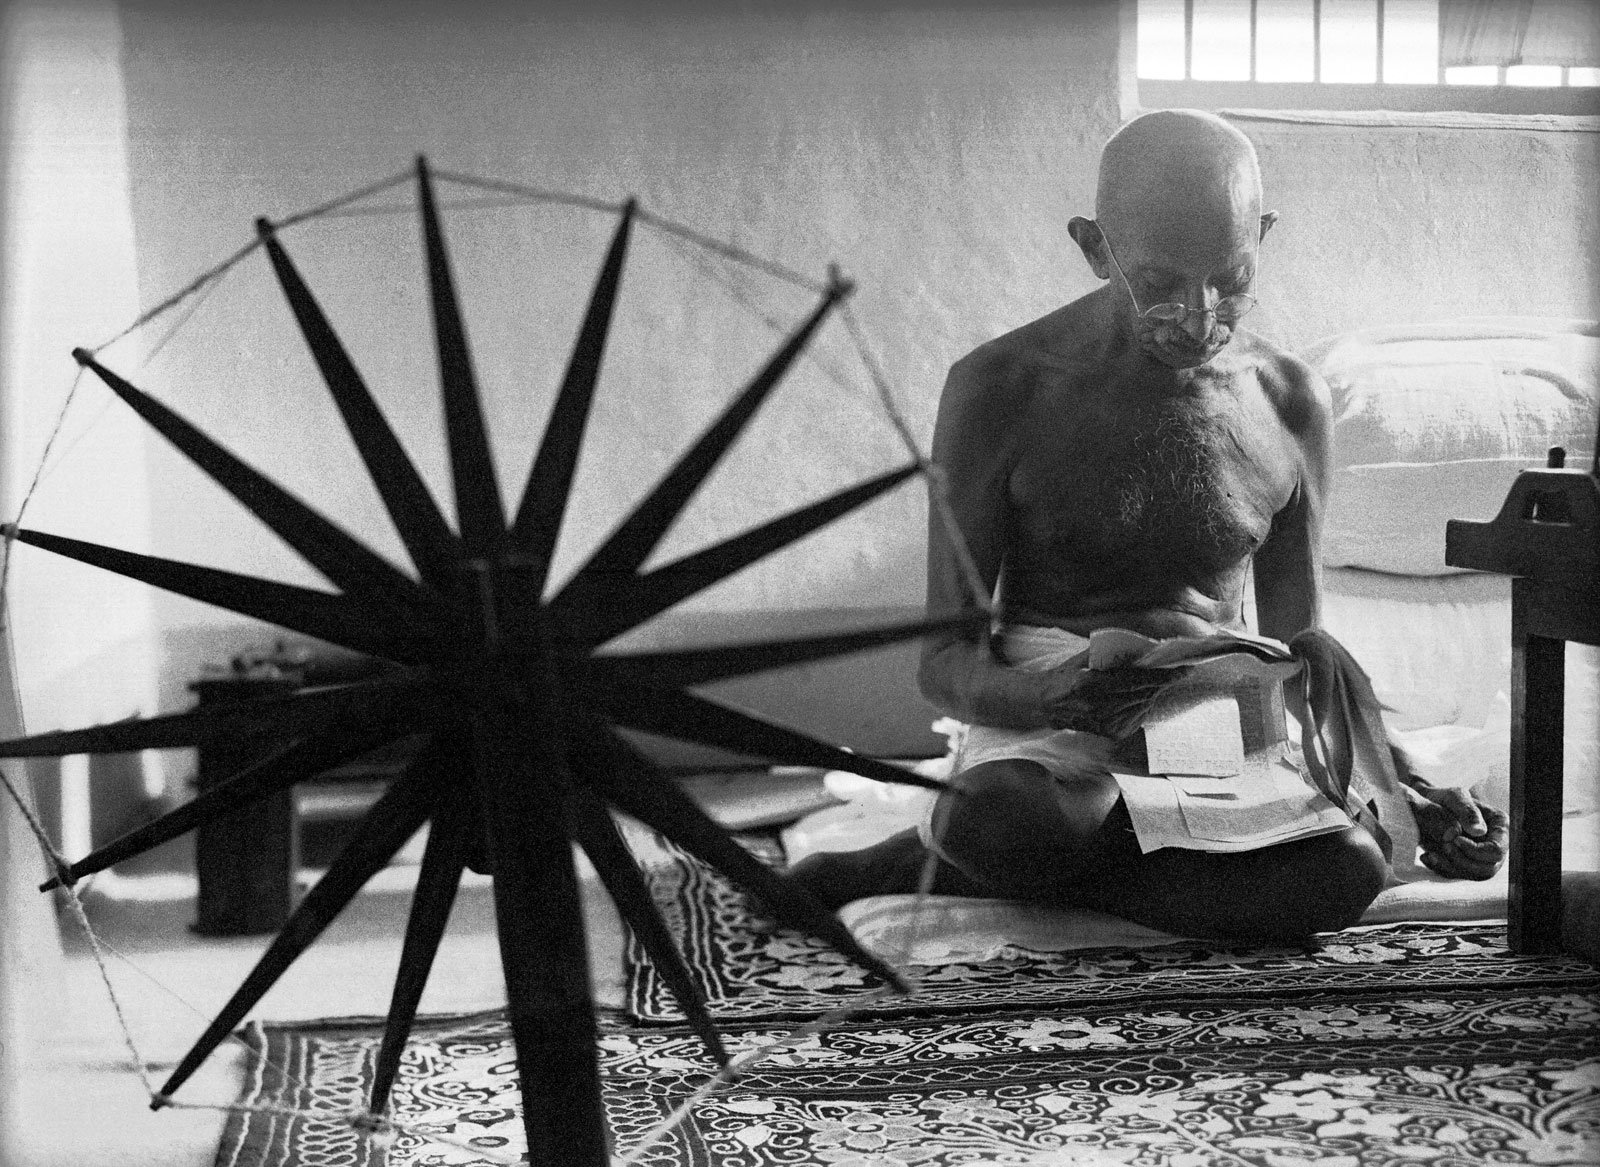 Gandhi and the spinning wheel.